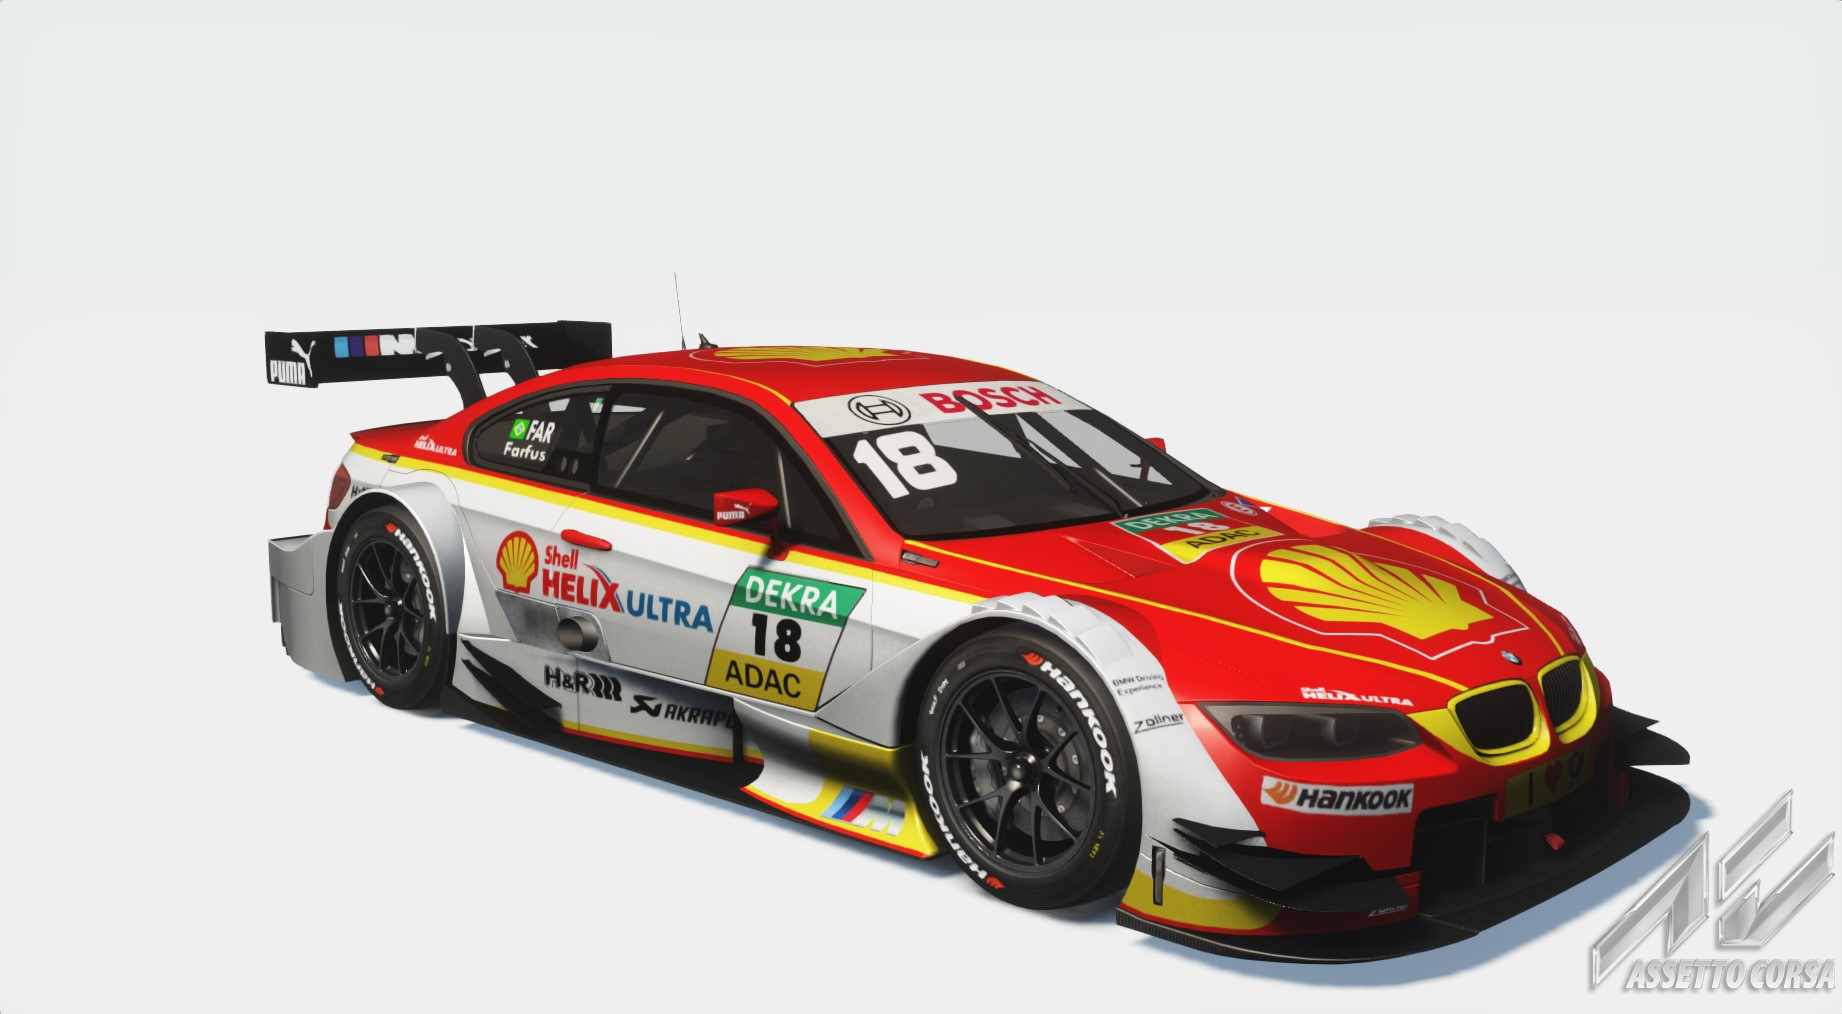 Farfus DTM BMW 2015 - Shell DTM BMW 2015 Skin | RaceDepartment